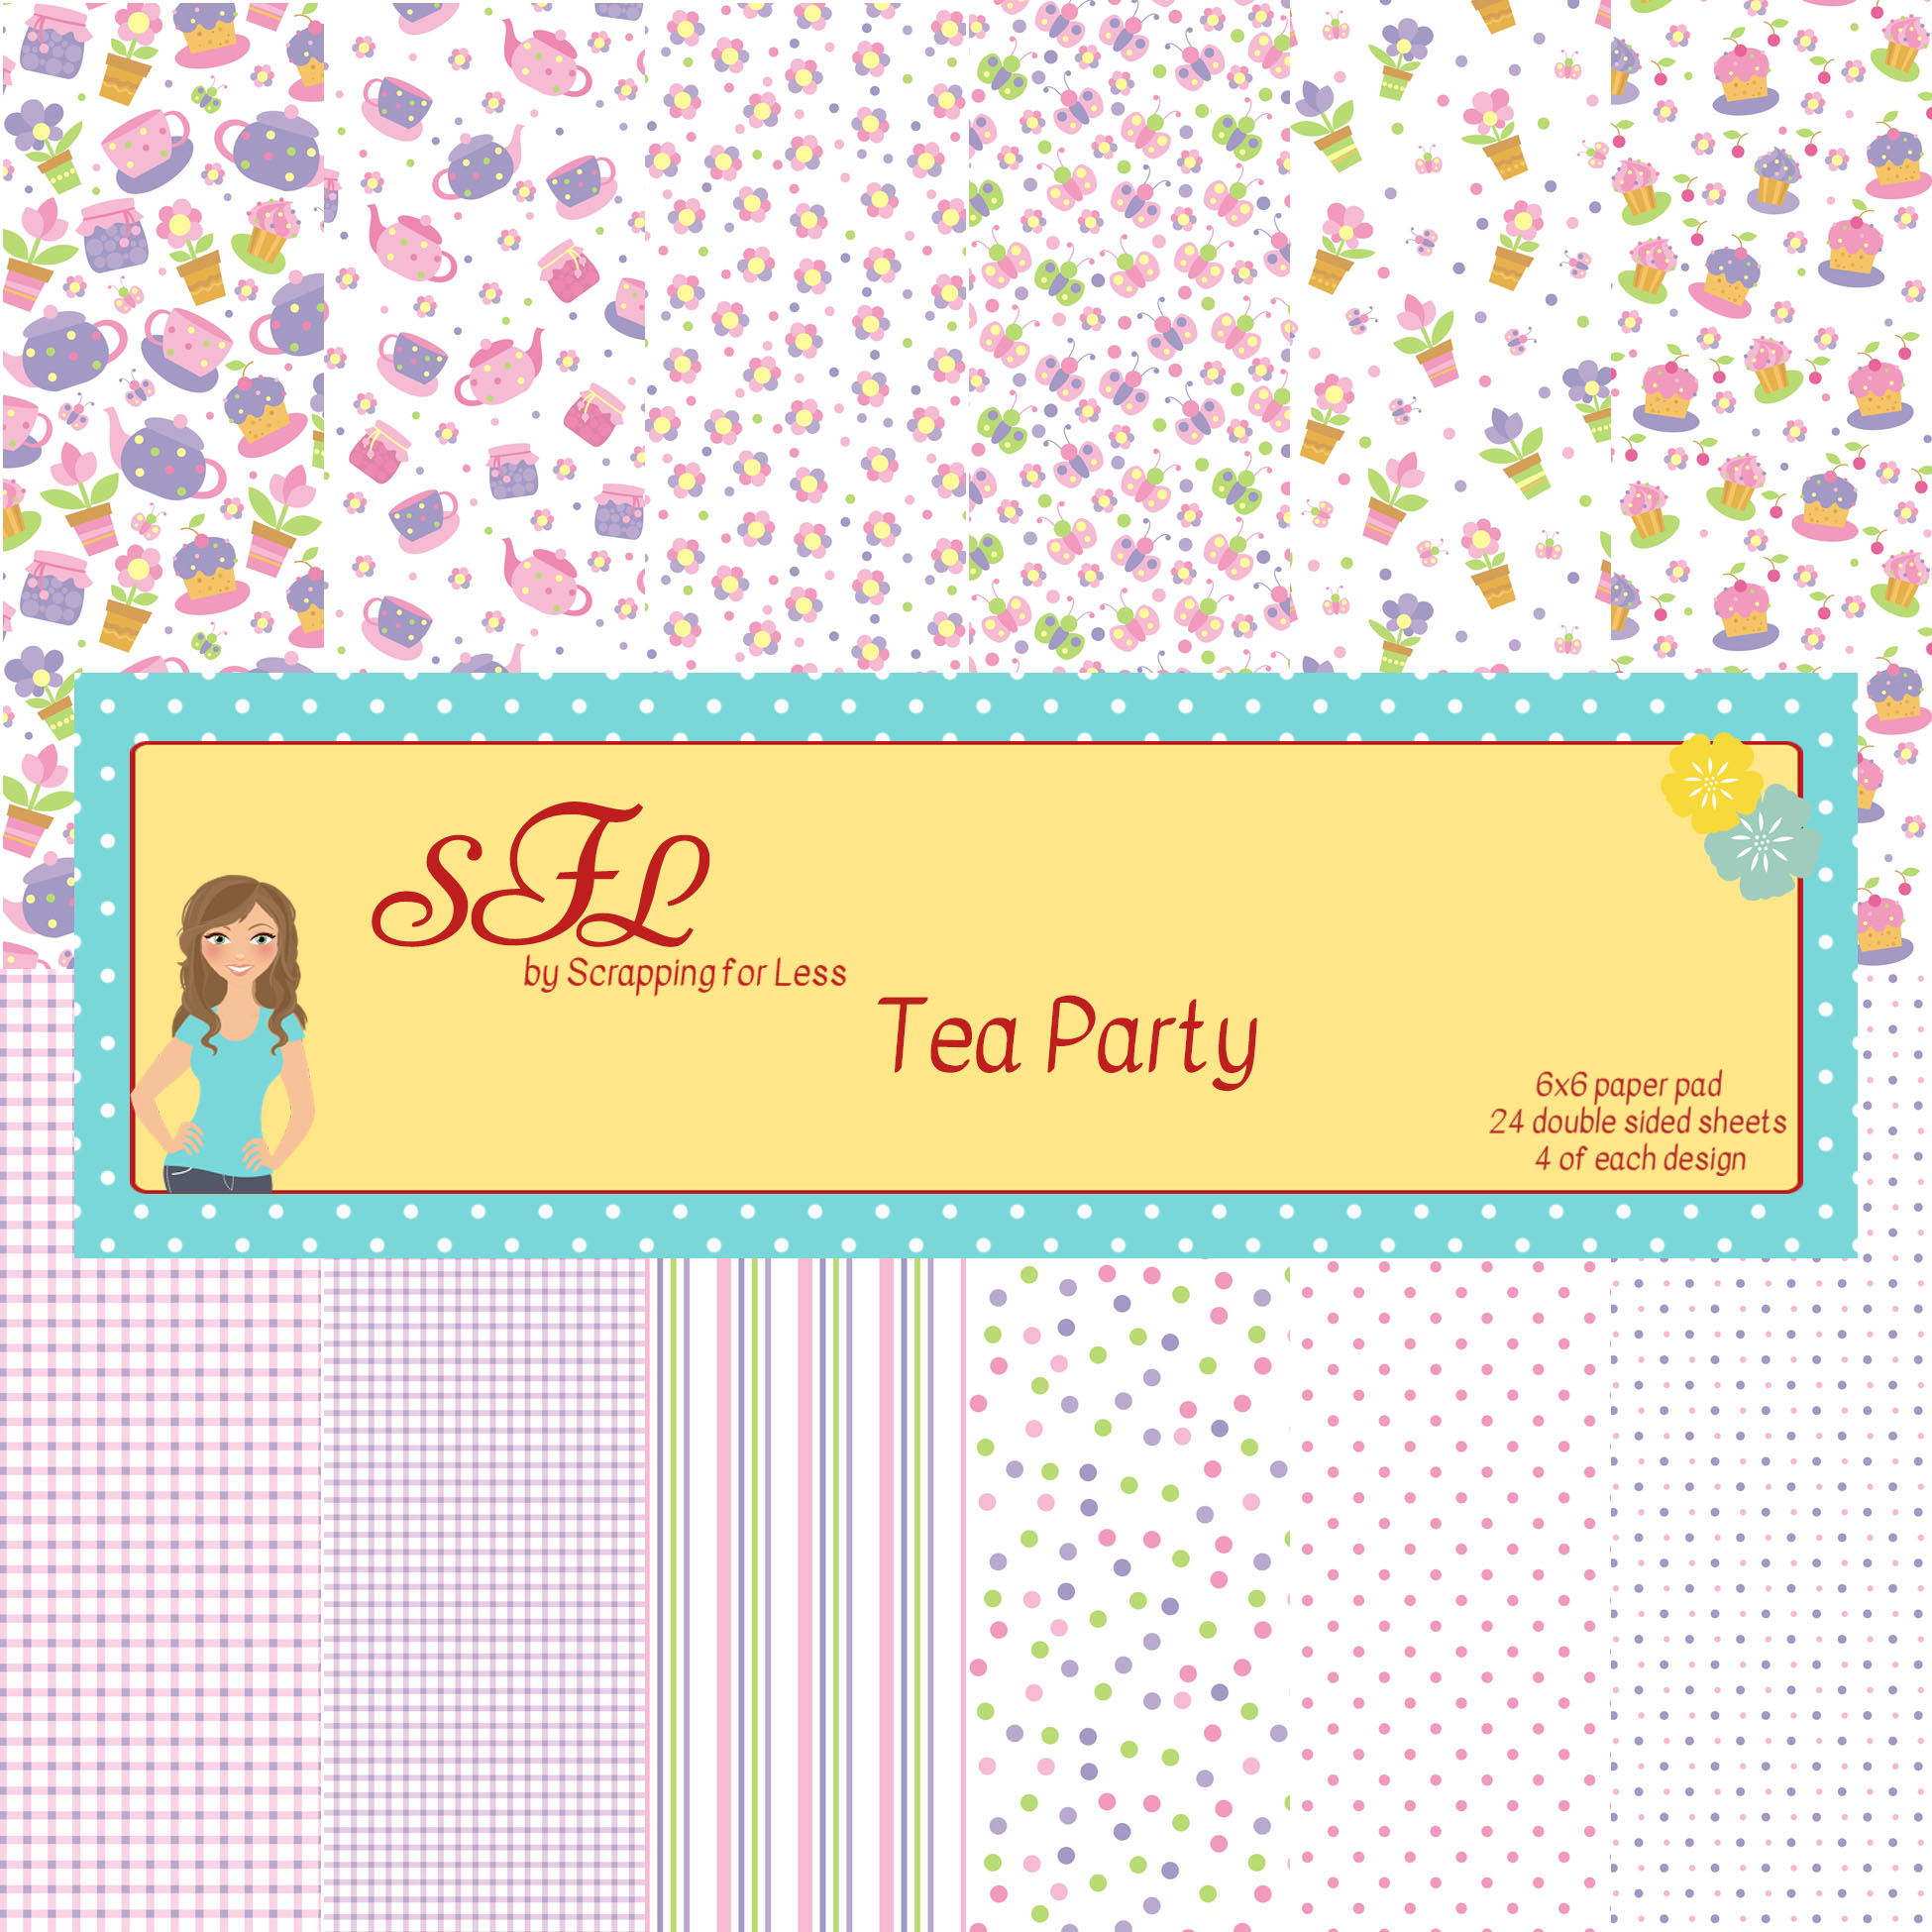 Scrapping for Less 6x6 Paper Pad Tea Party